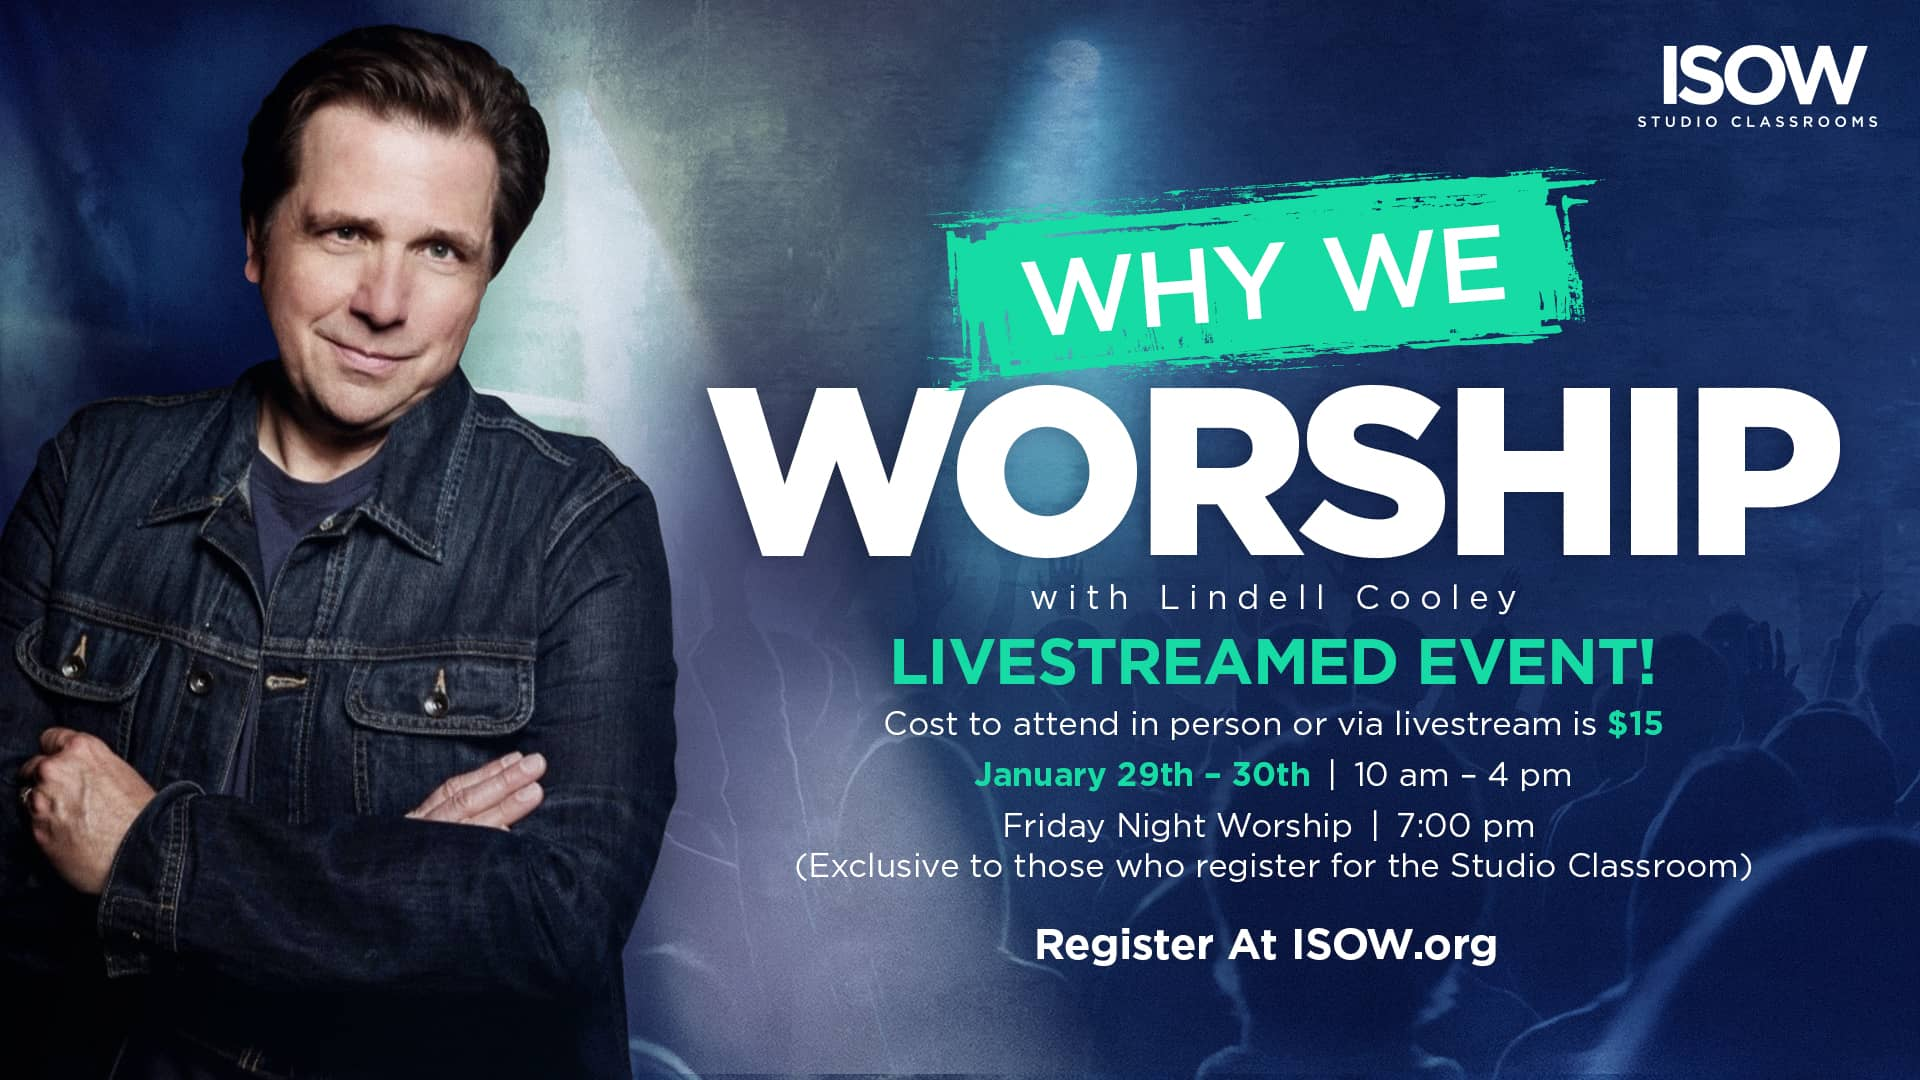 Why We Worship In-person or Livestreamed $15 per person 1/29/21 - 1/30/21